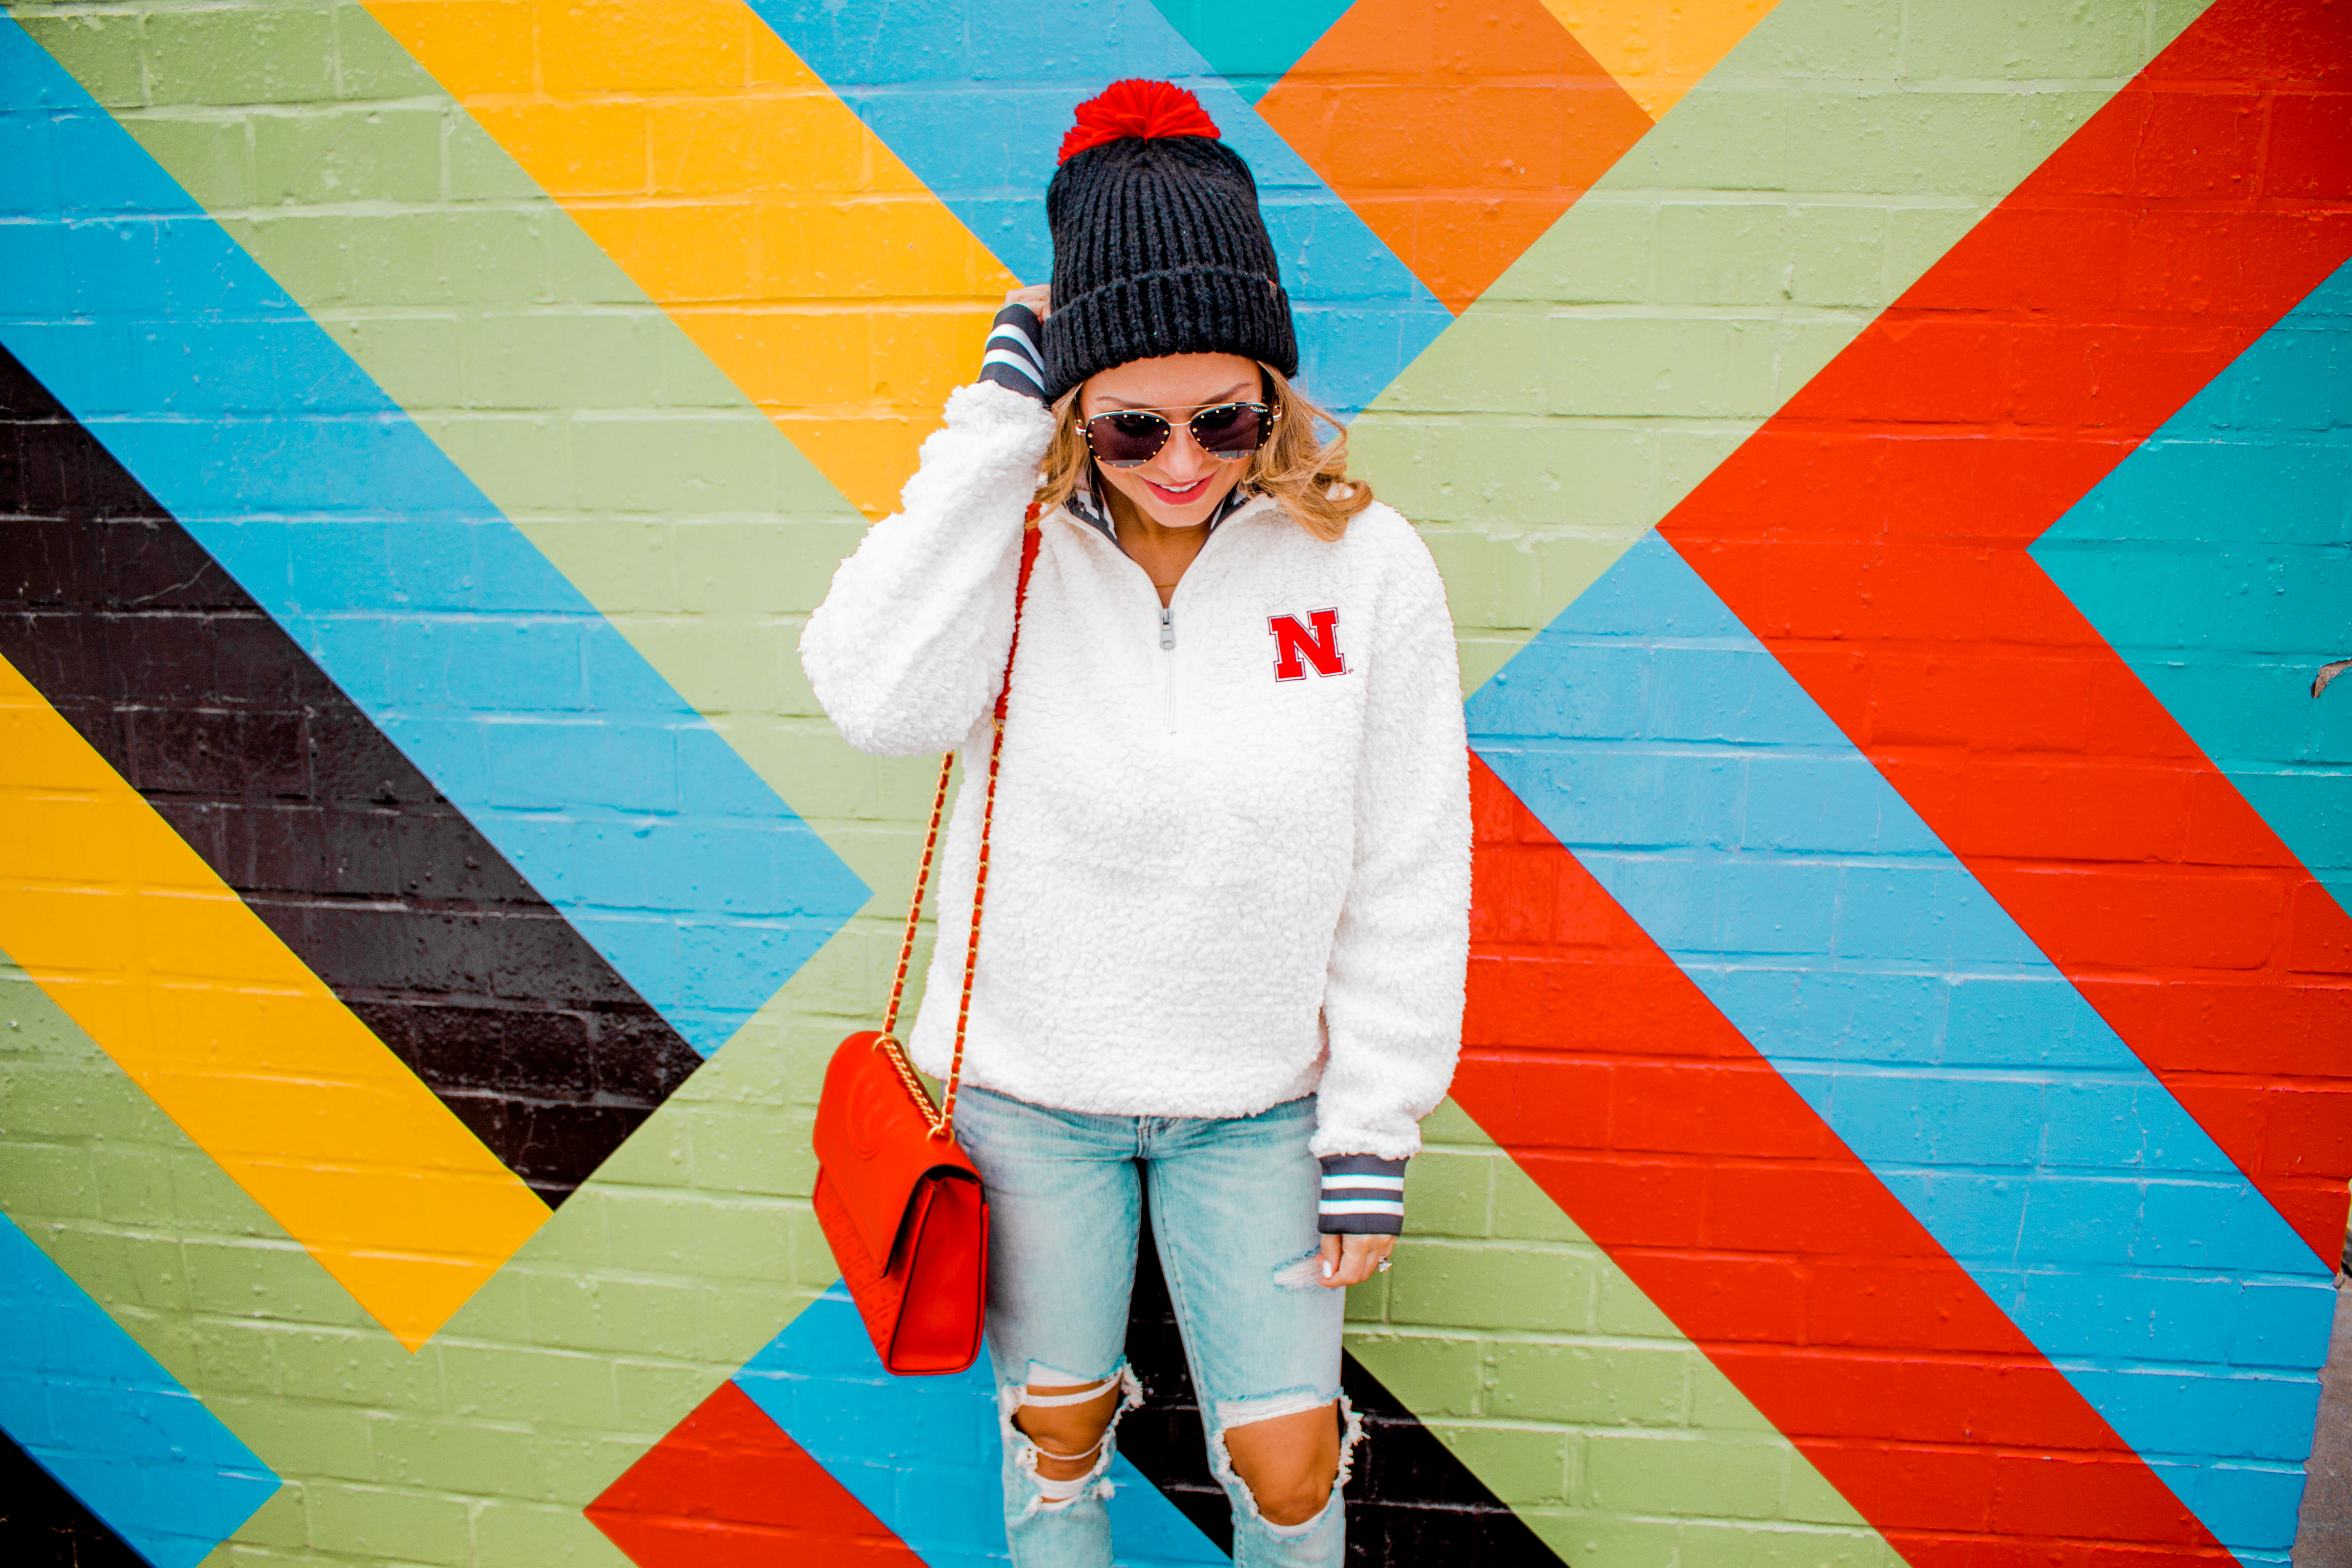 Nebraska - Women's Fashion - Sherpa - Husker - Pullover - Husker Gear - Omaha Blogger - Sabby Style - Casual Outfit - 19